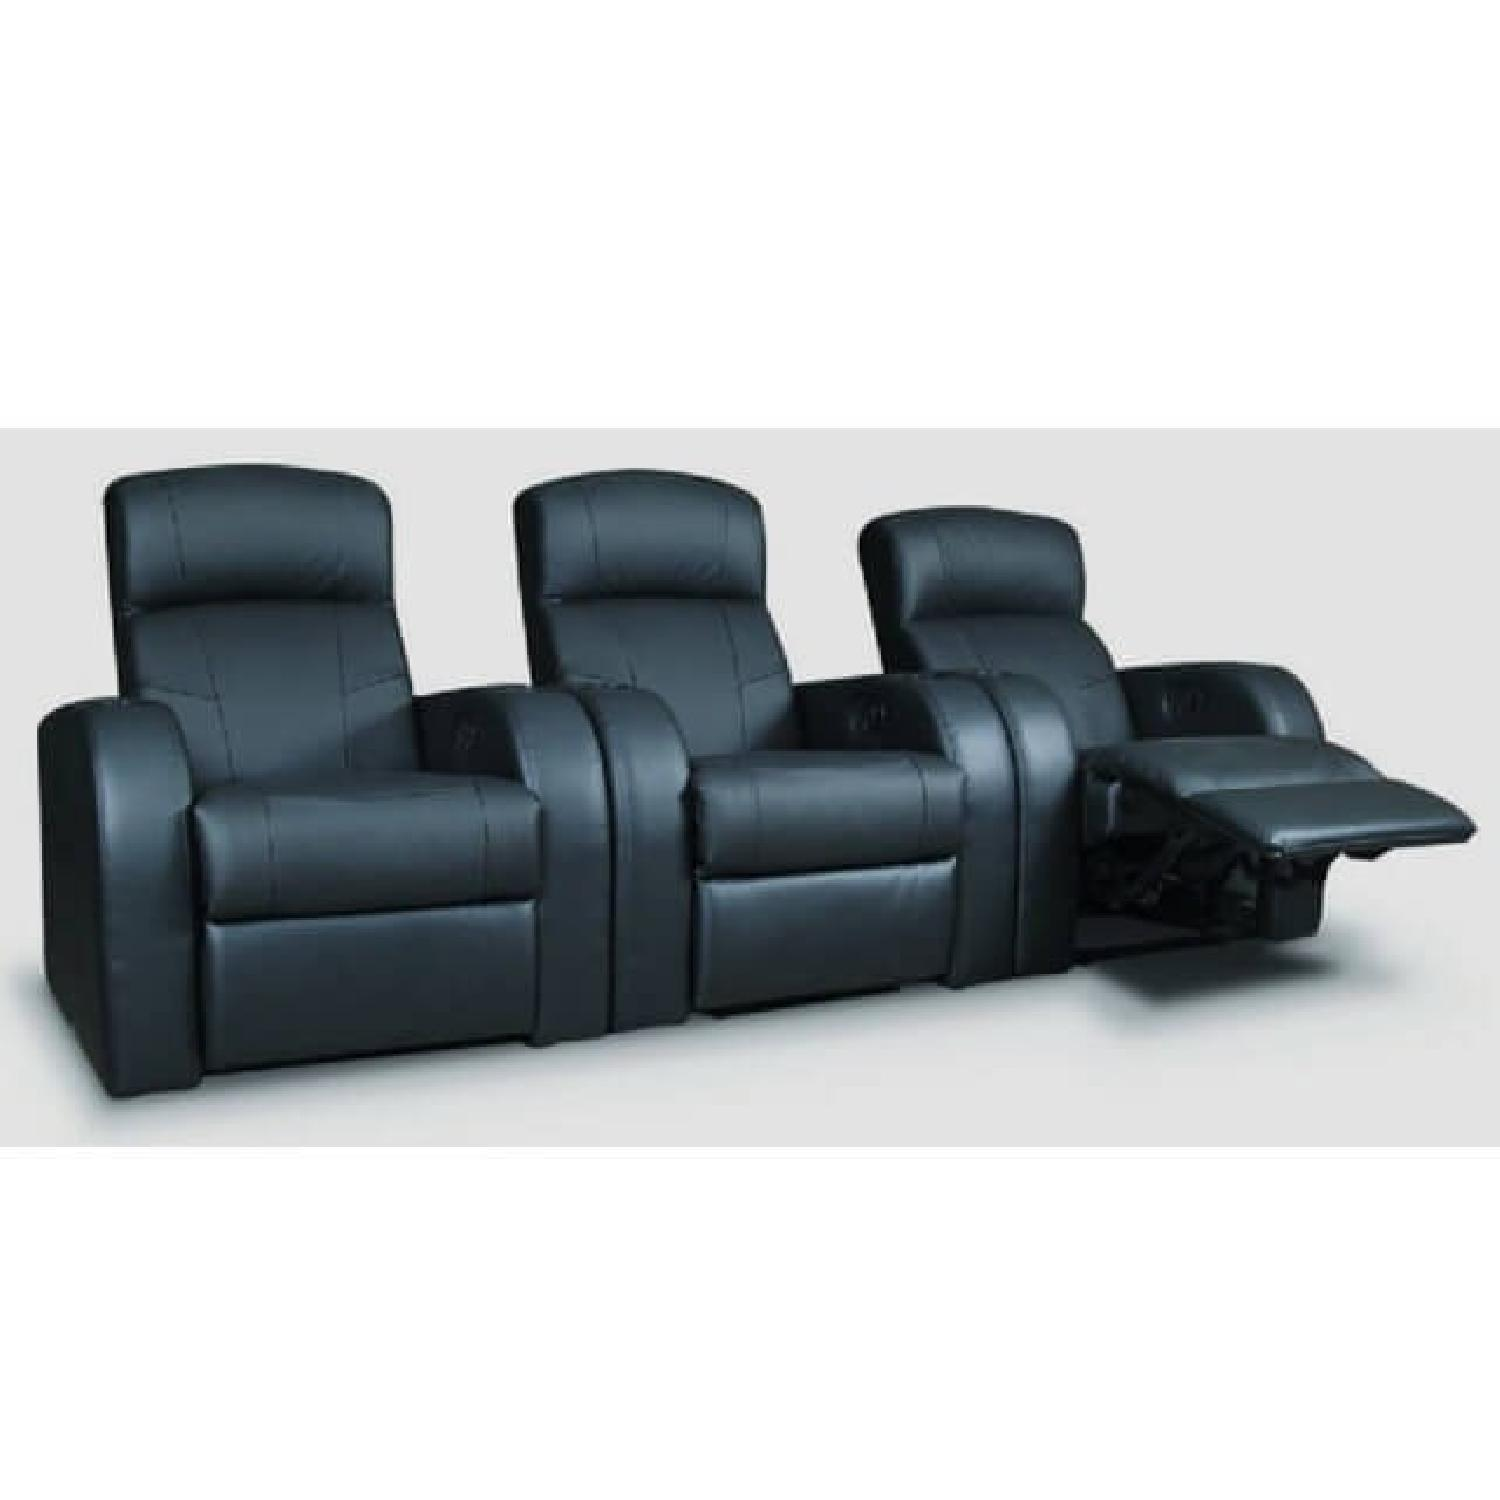 Recliner Chair in Black Leather Match w/ Cup-Holders-3